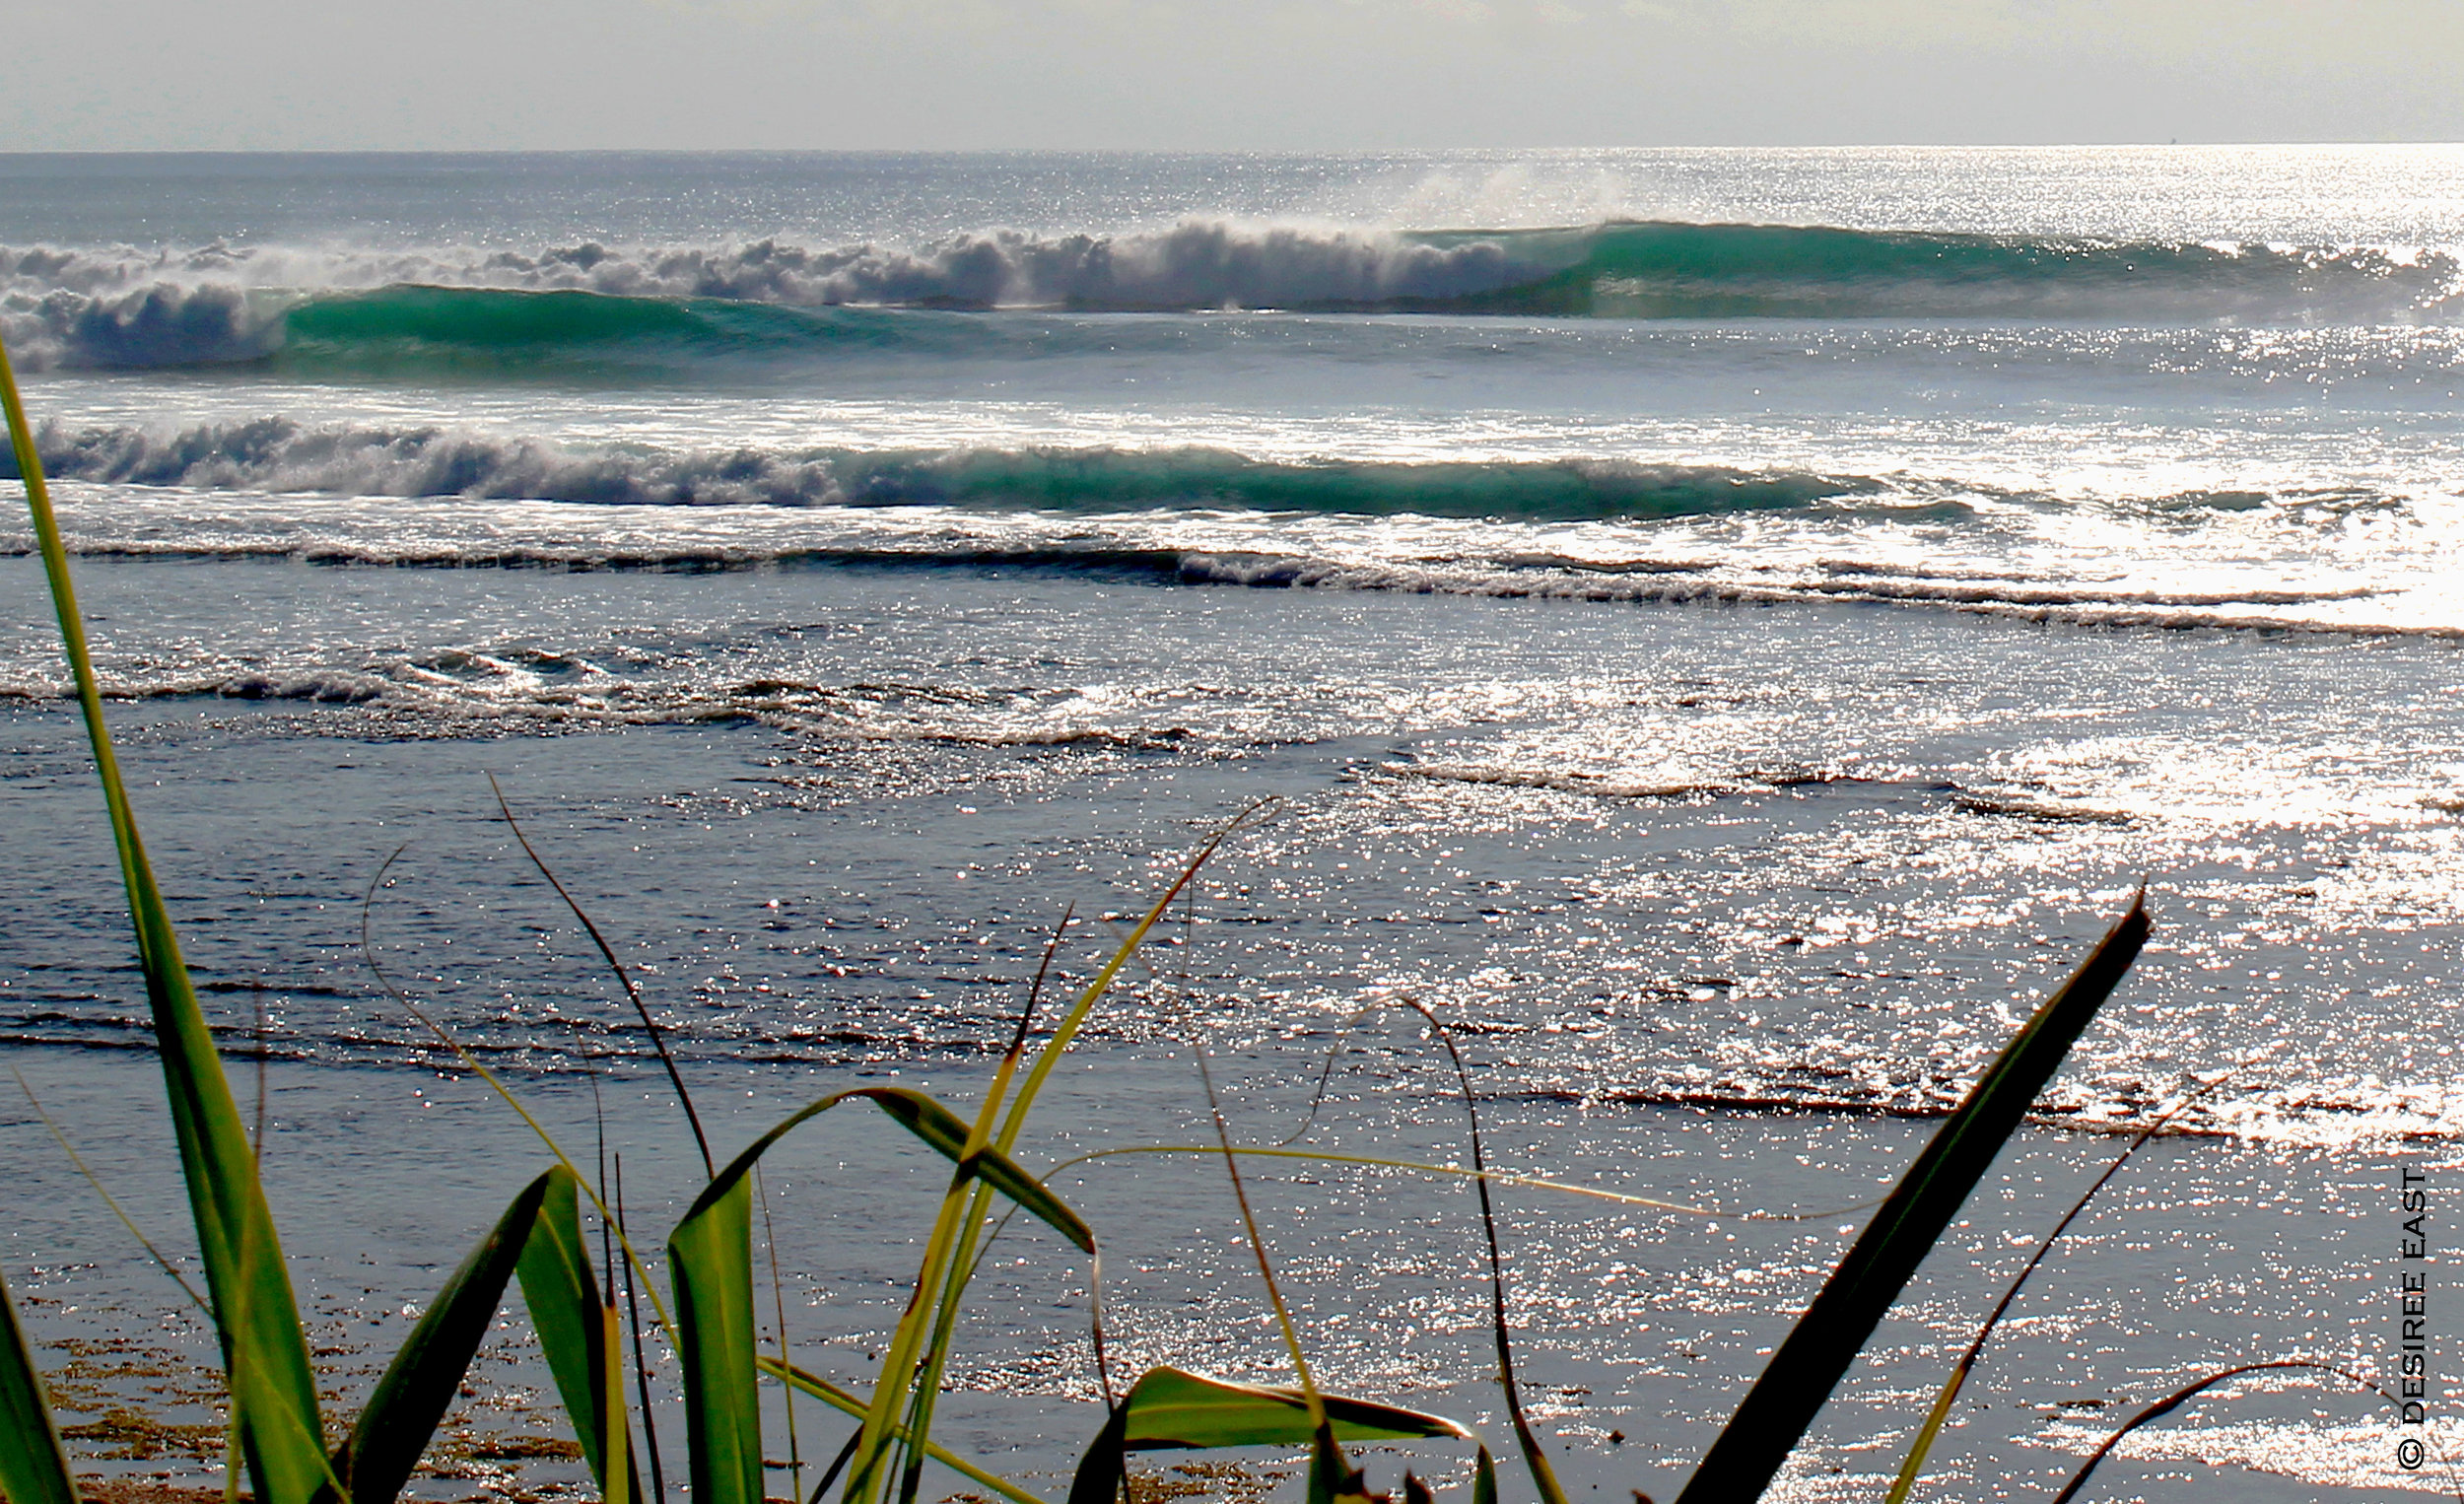 cleaner day for surf. bali, indonesia. photo by desiree east